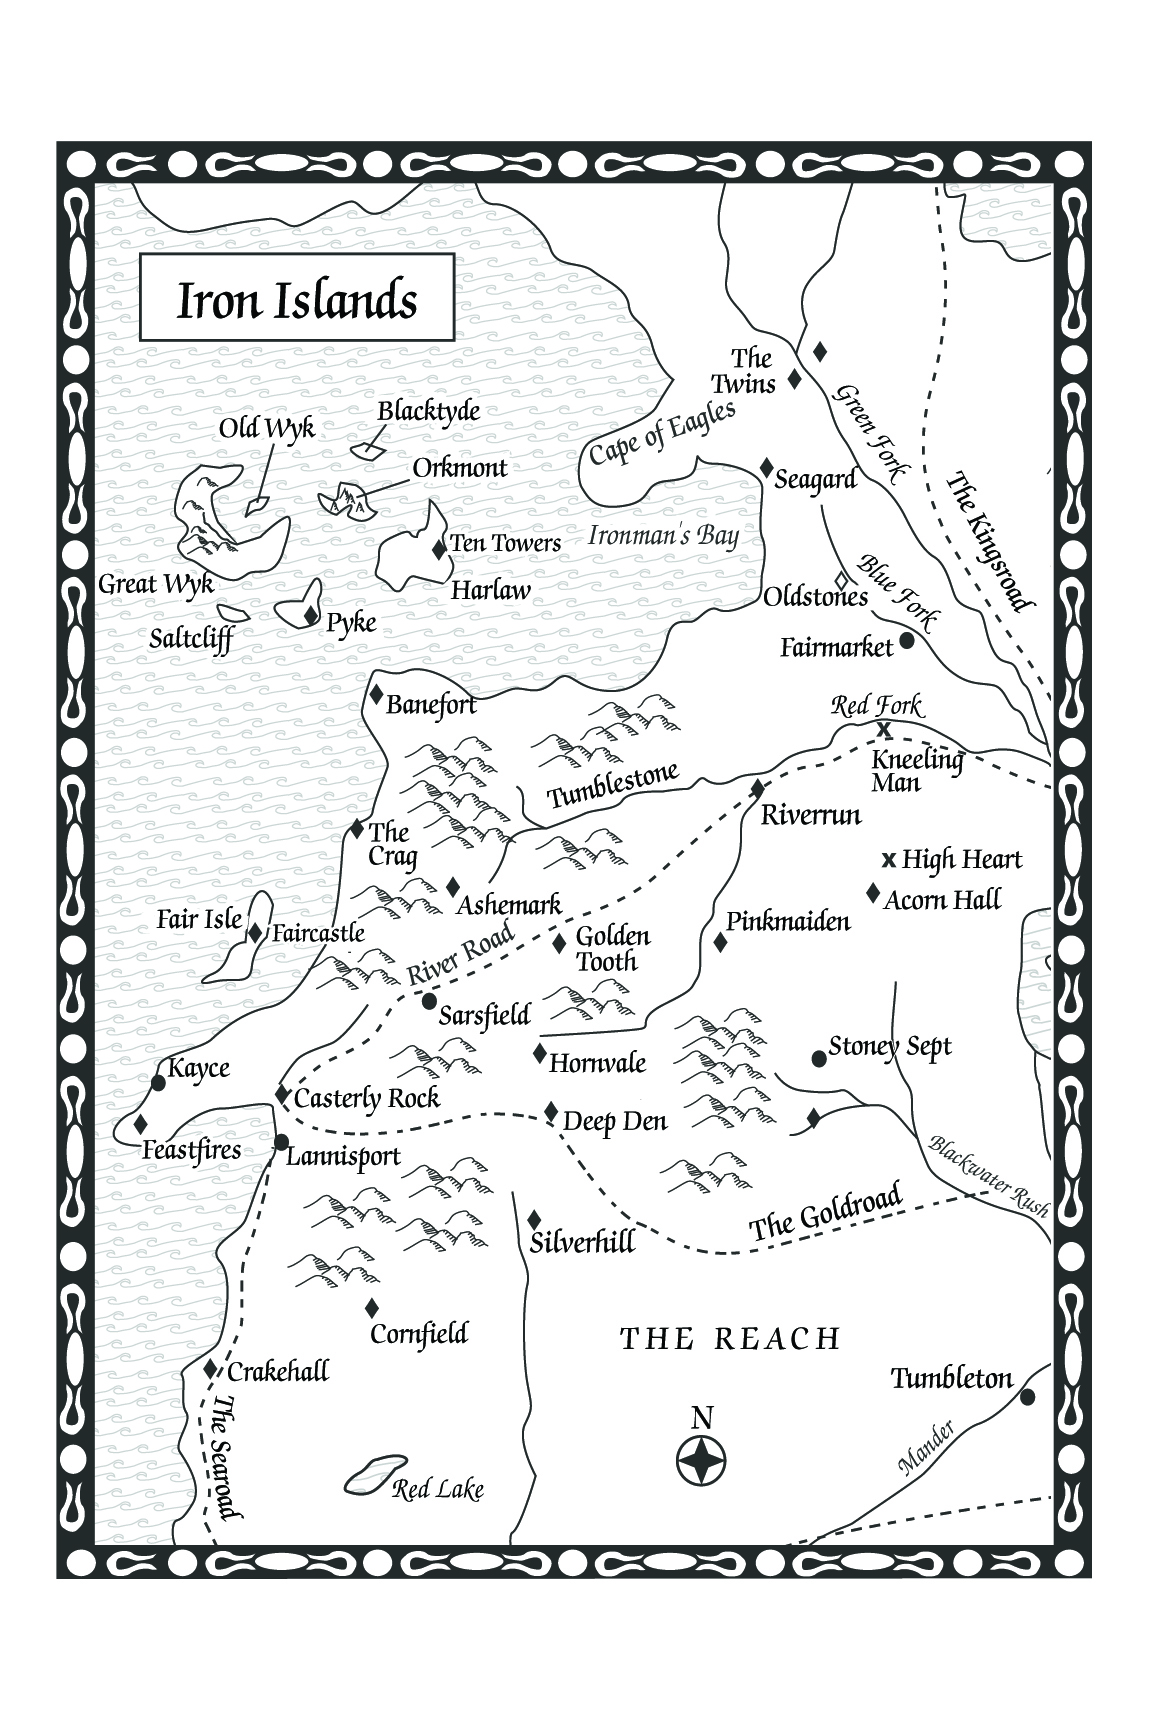 Original game of thrones maps hejorama game of thrones iron islands map from a feast for crows gumiabroncs Image collections